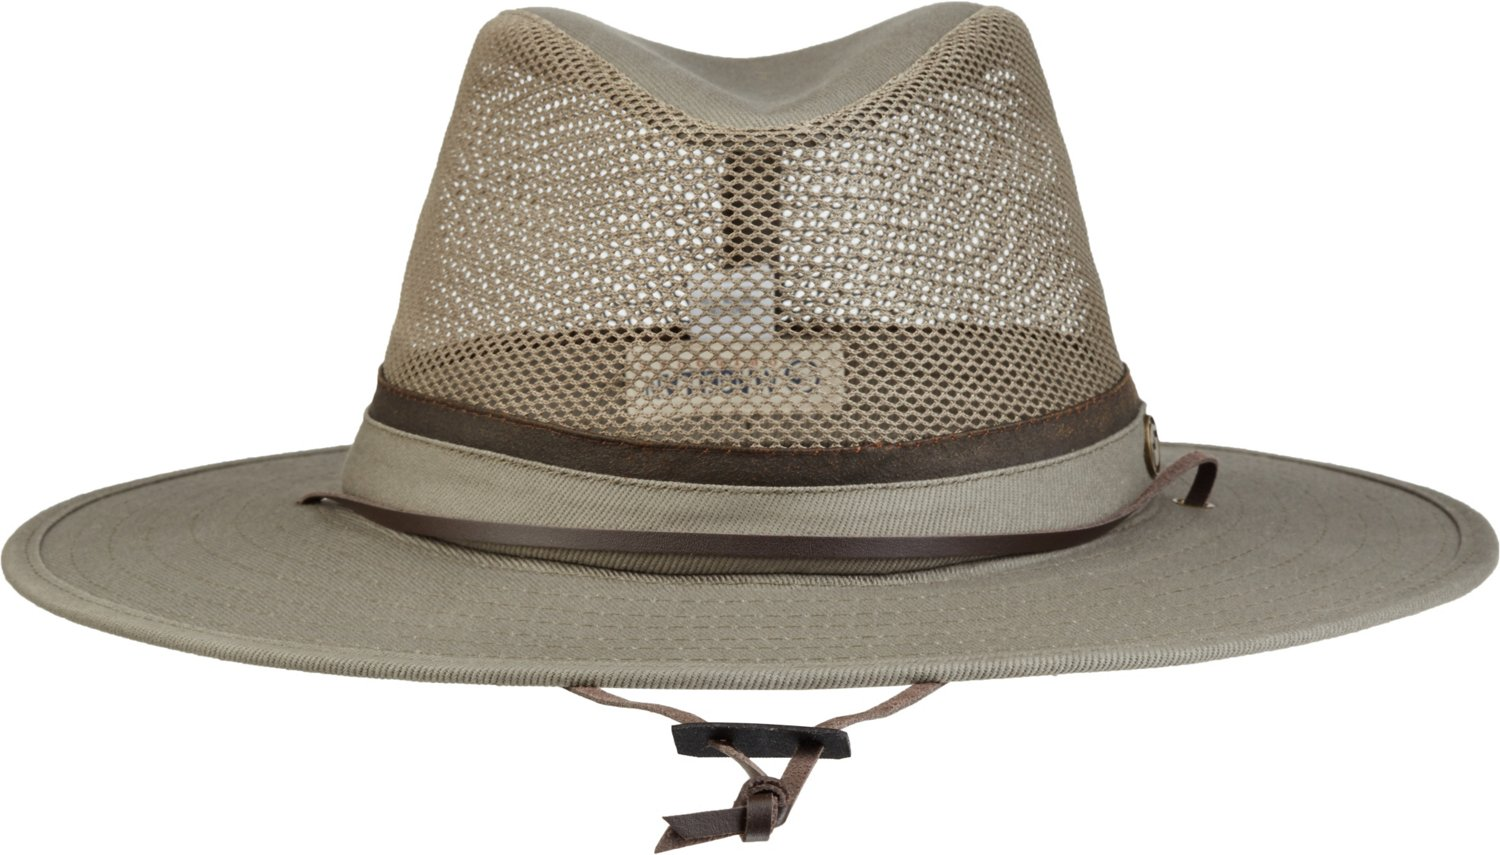 8705846503e Display product reviews for Magellan Outdoors Men s Big Brim Twill Safari  Hat